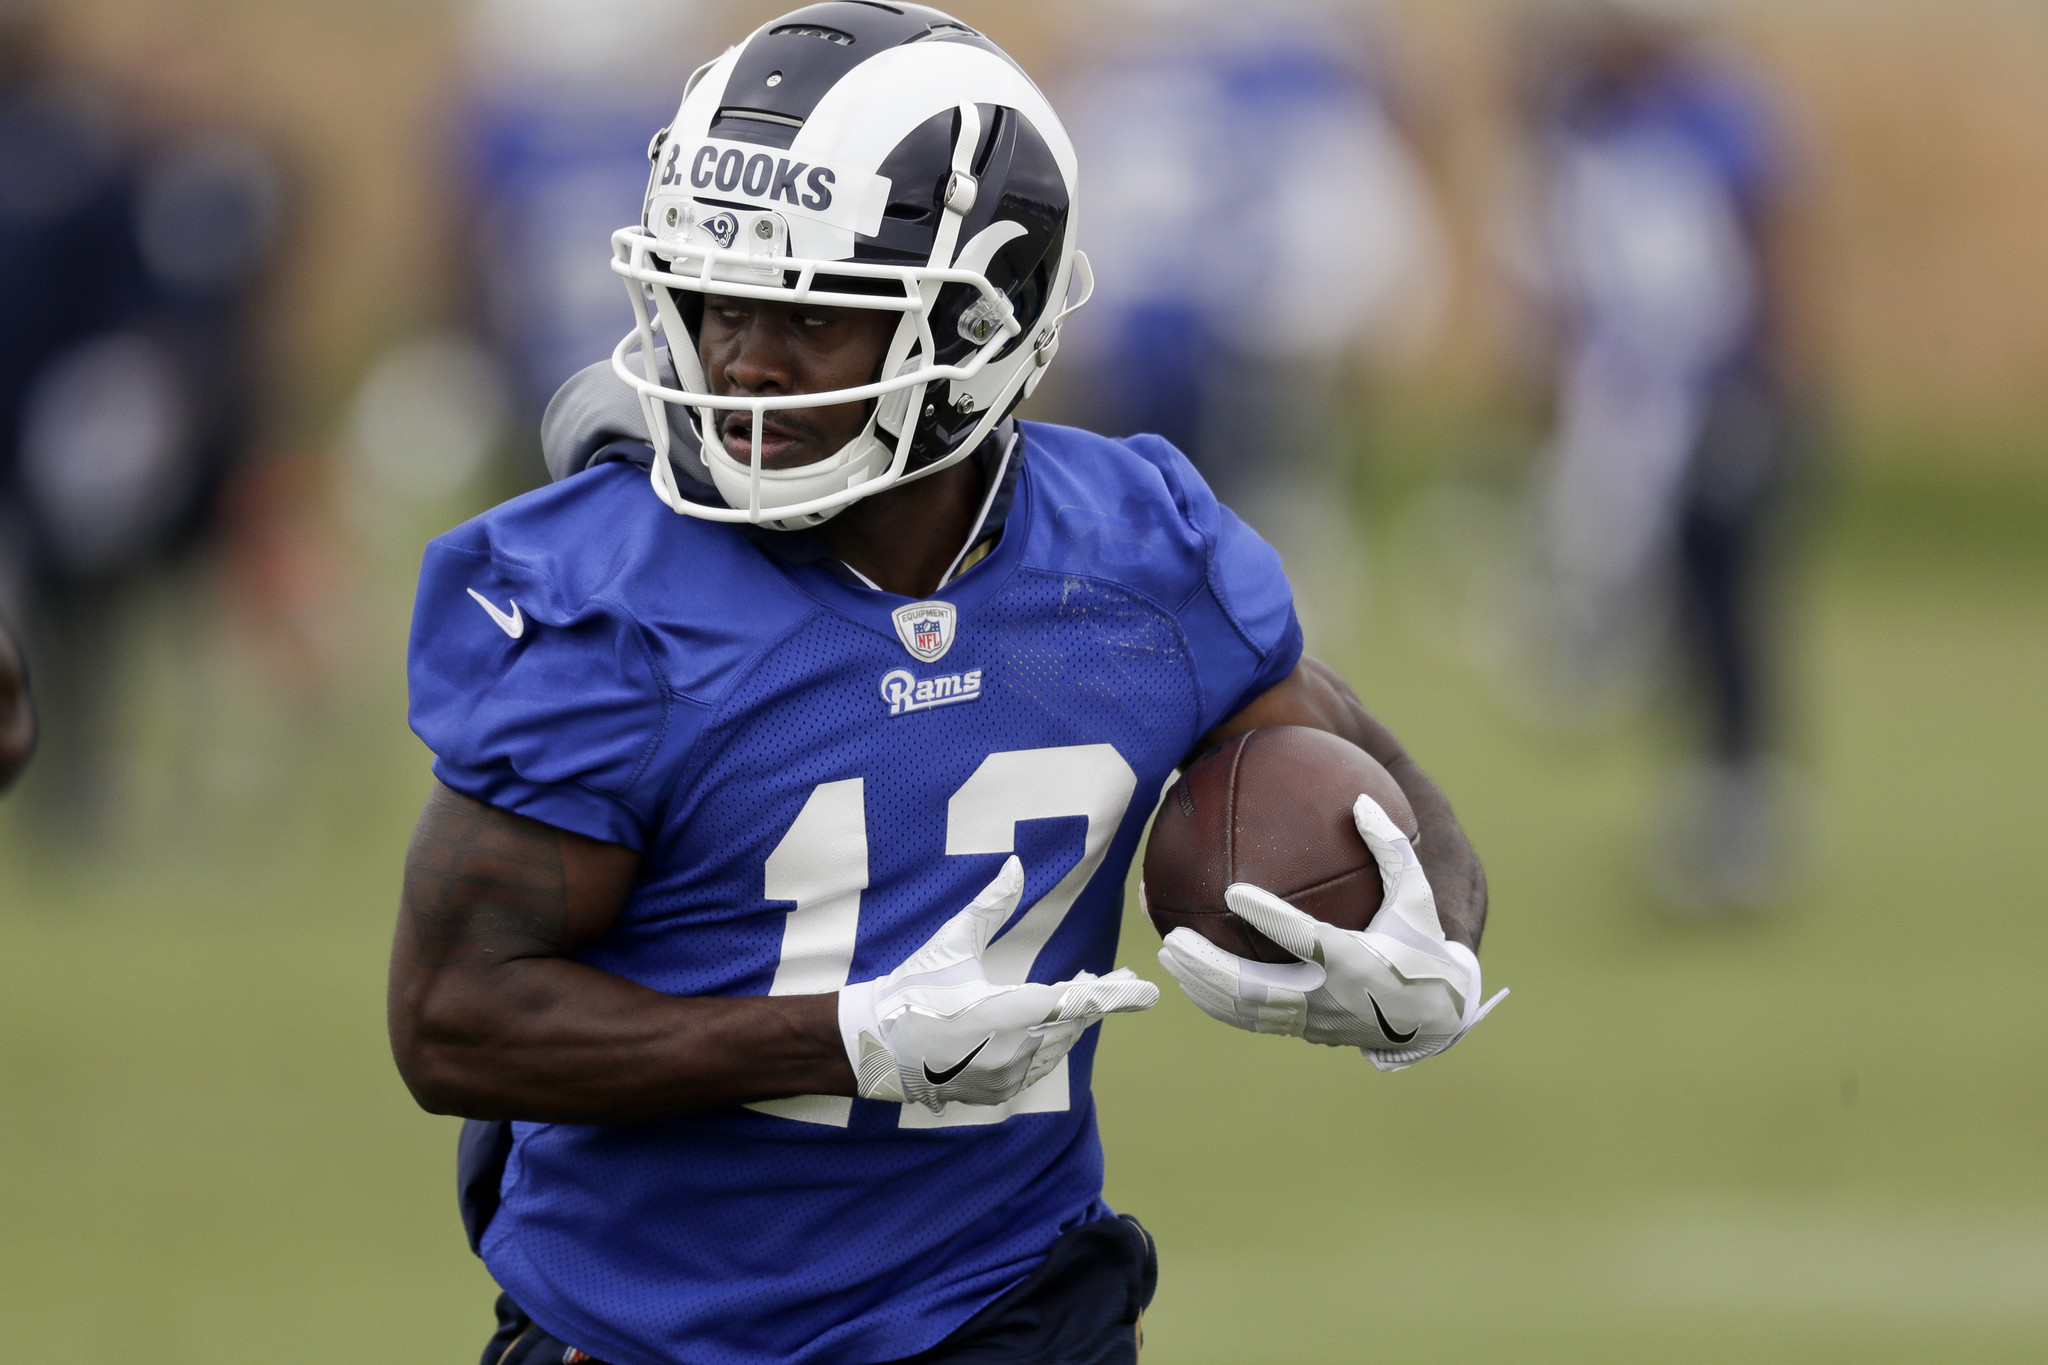 FILE - In this Monday, May 21, 2018 file photo,Los Angeles Rams' Brandin Cooks trains during a foot